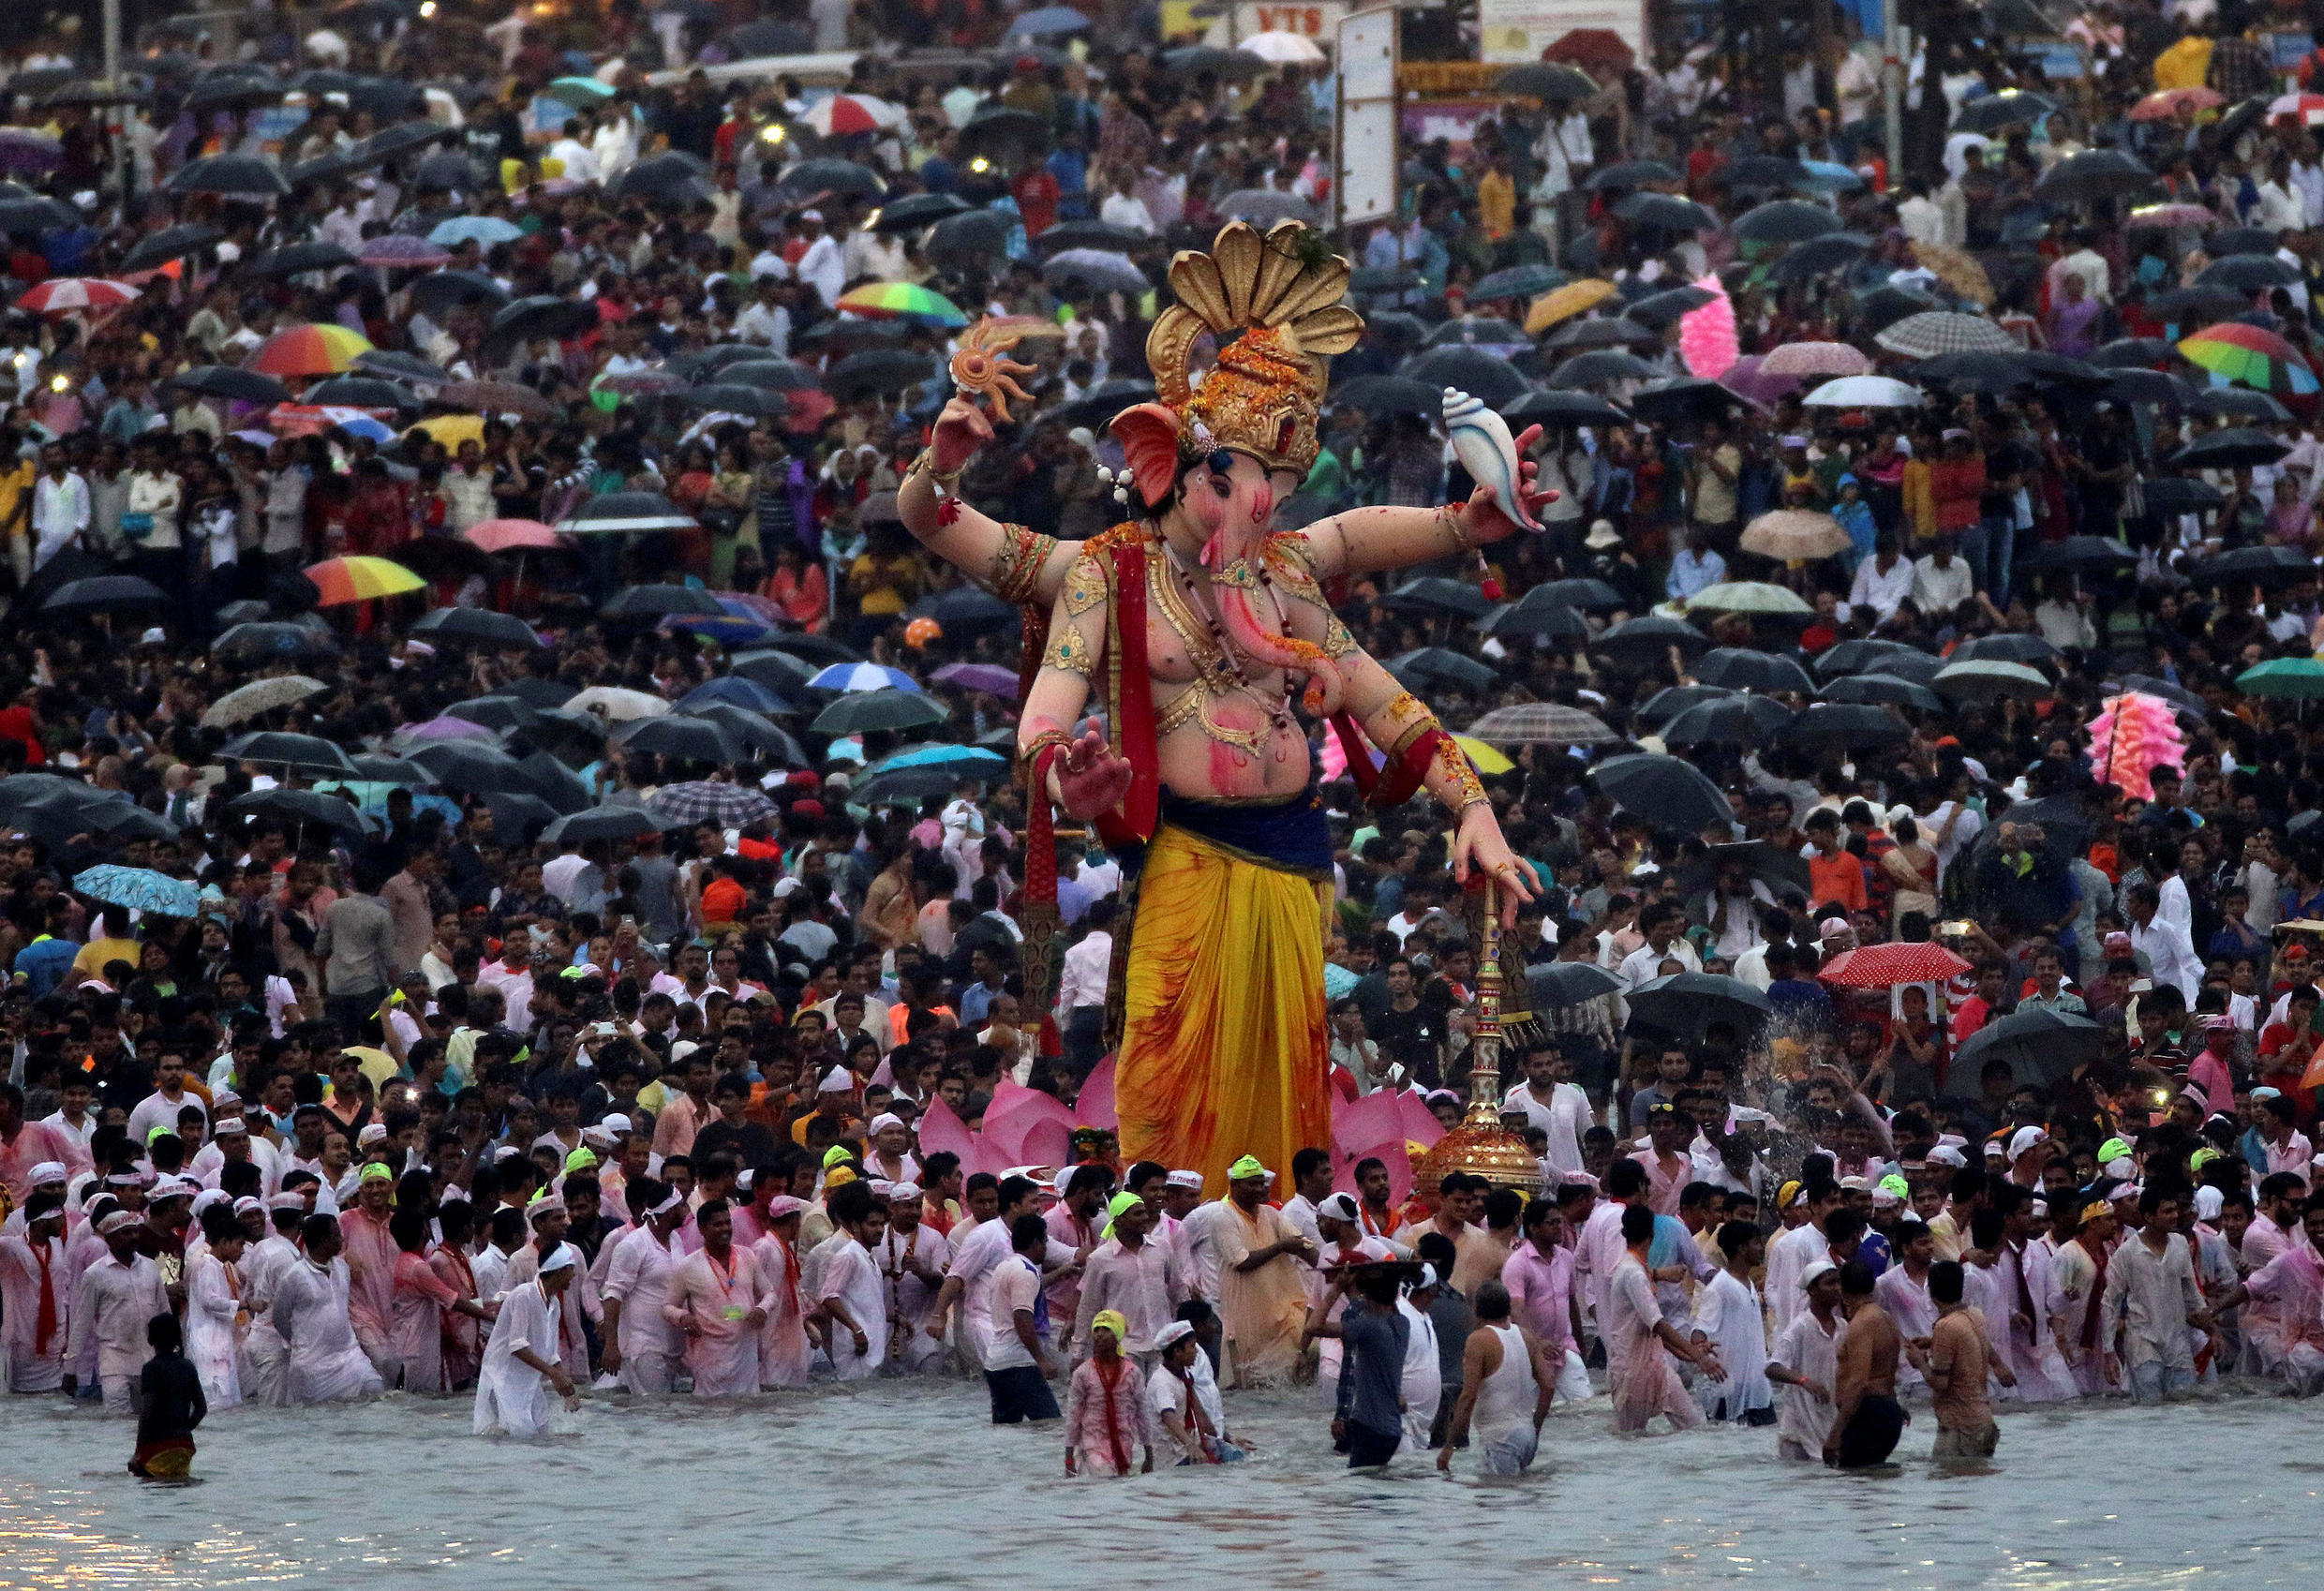 Devotees gather on the shores of the Arabian Sea in Mumbai to immerse idols of the Hindu god Ganesh